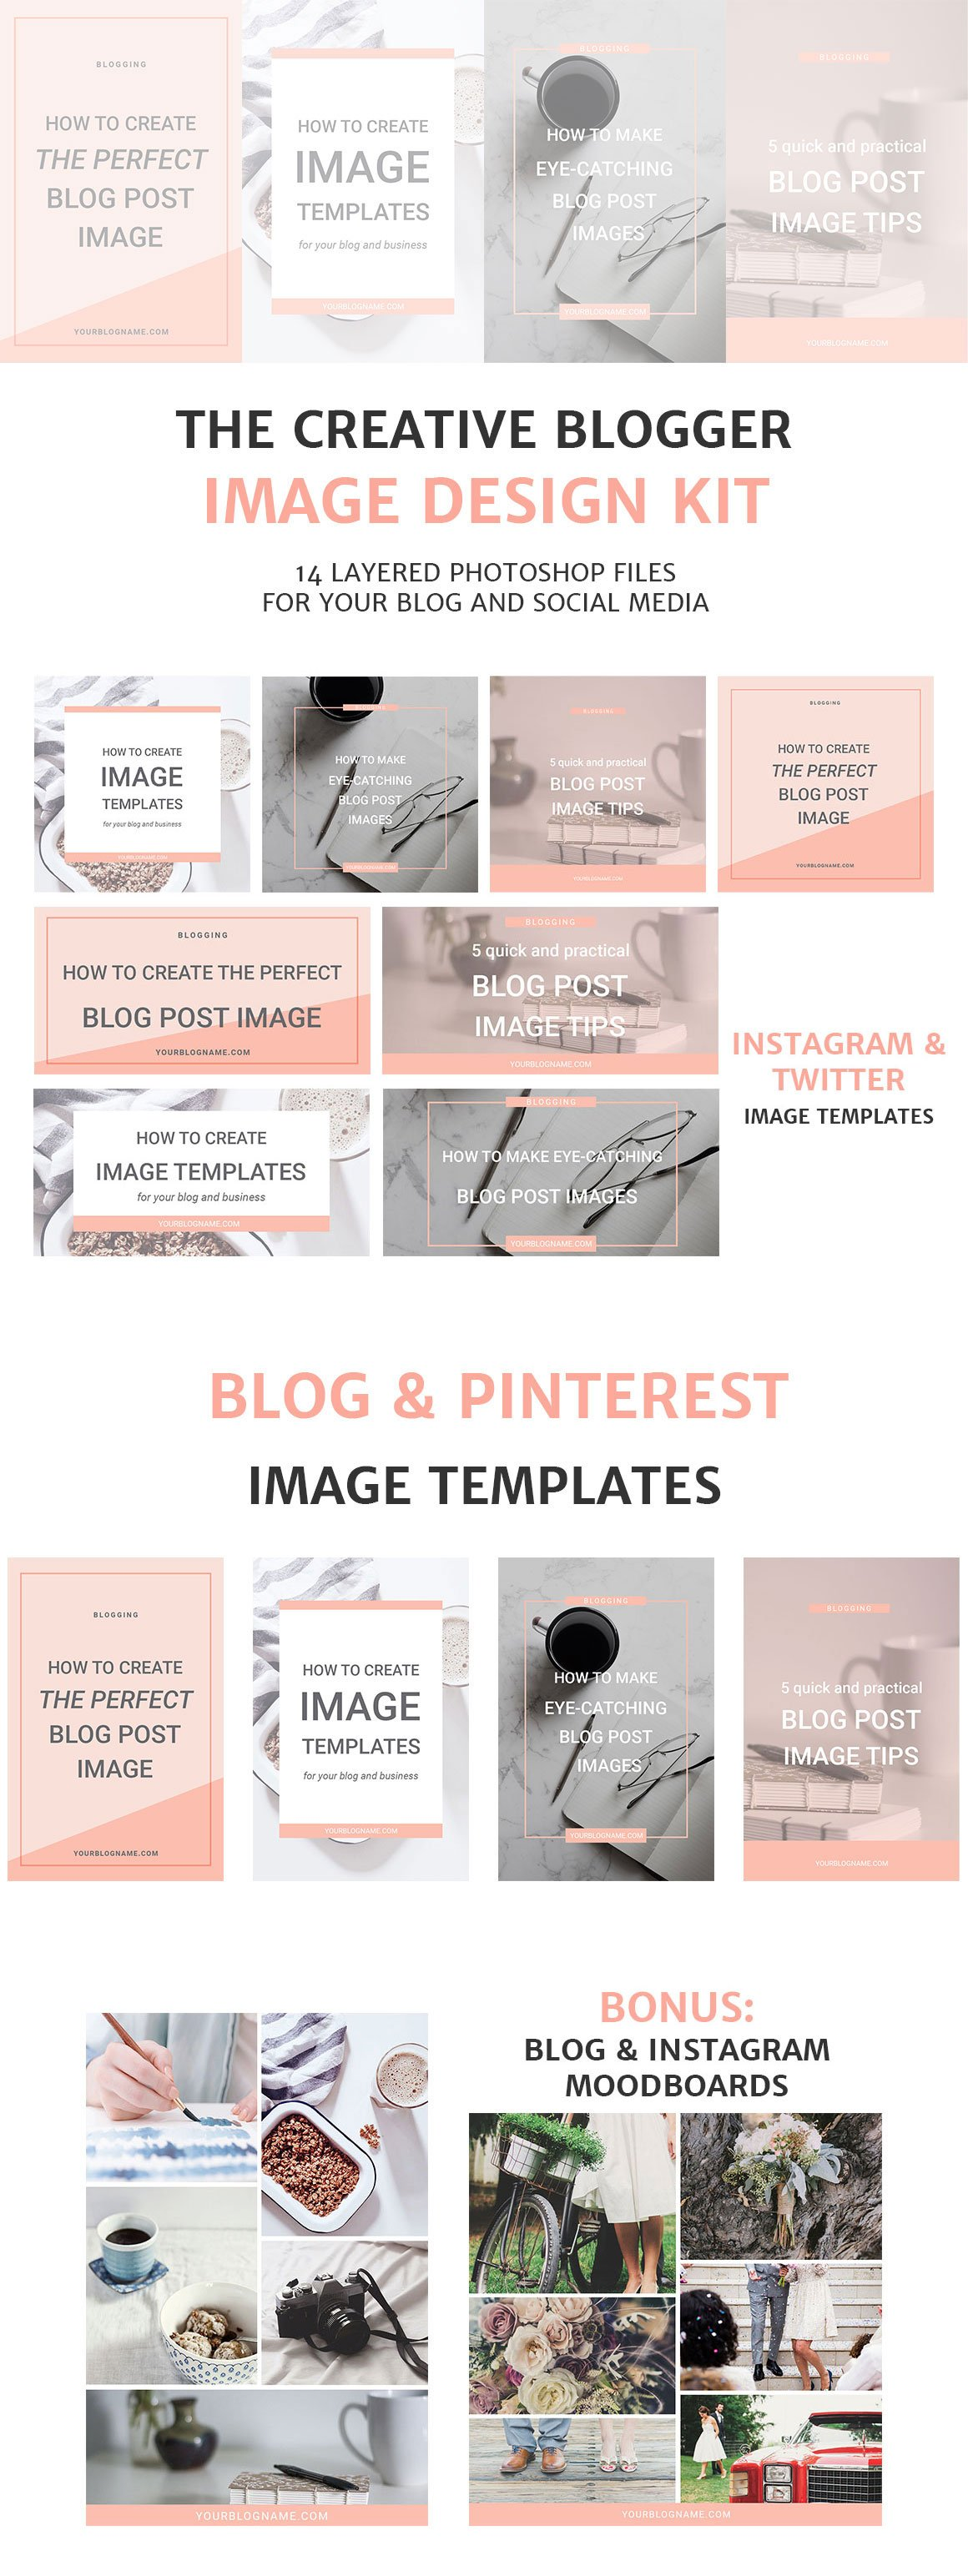 Blog post and social media image templates